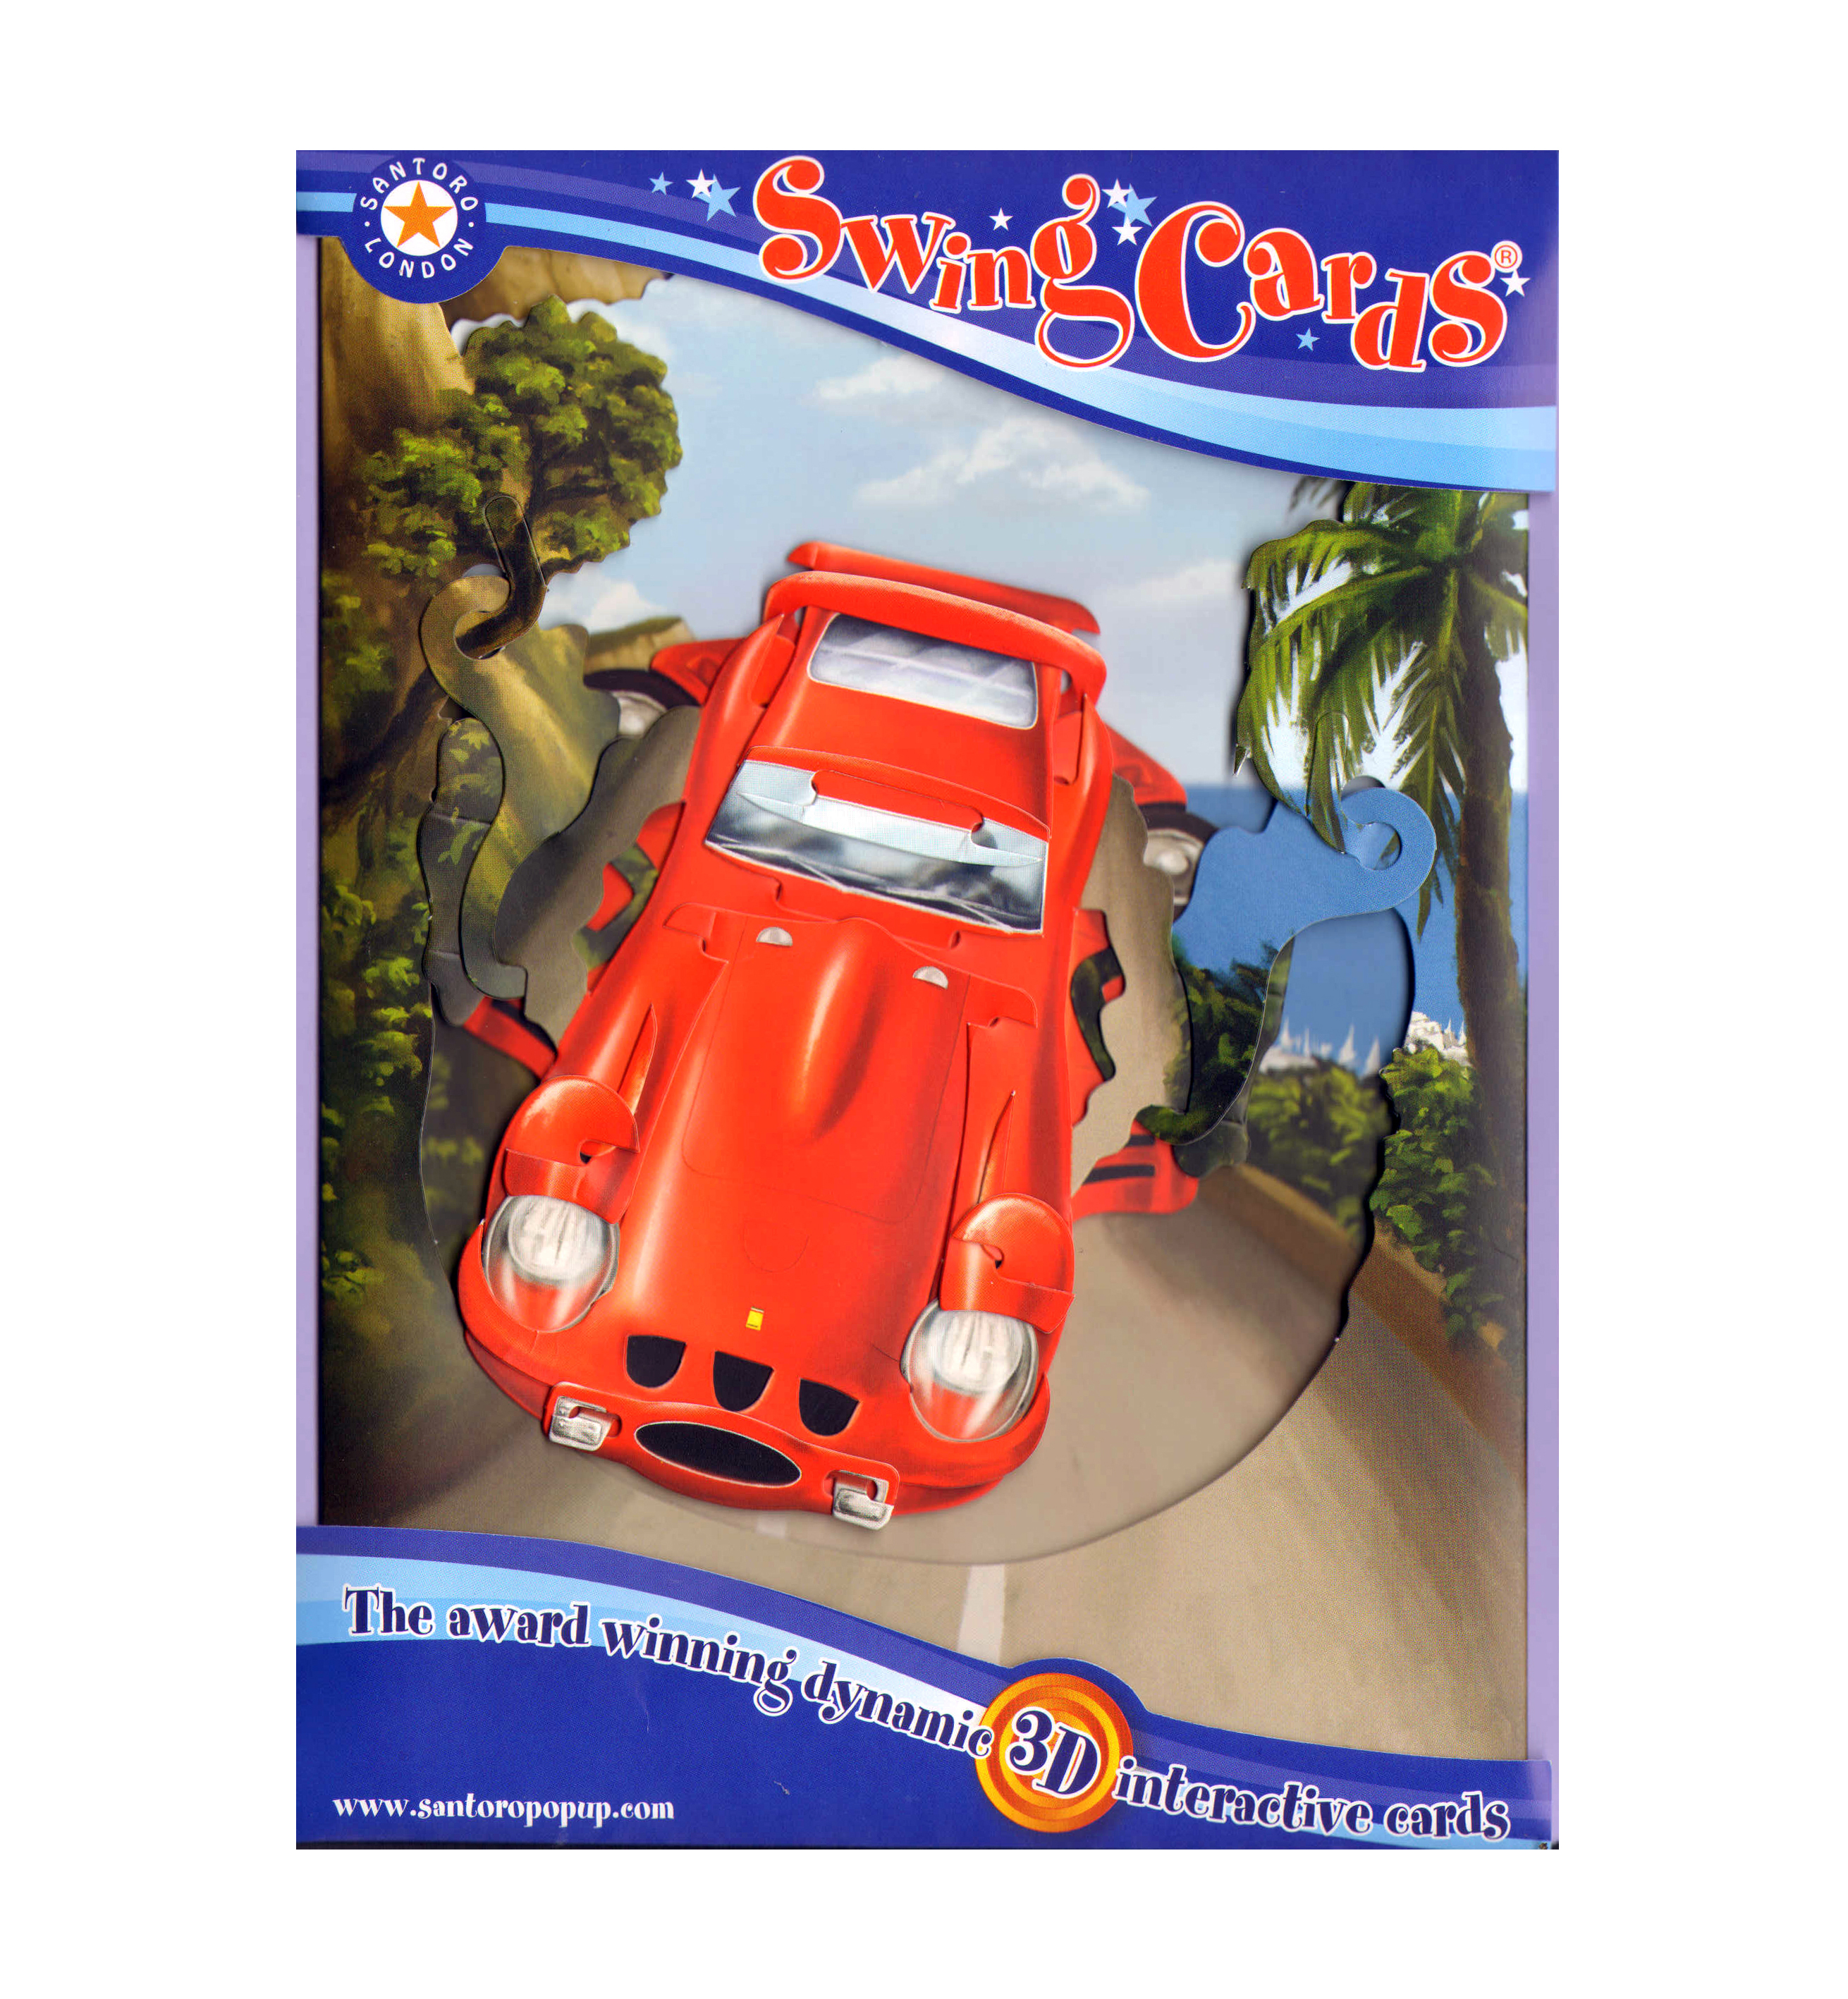 Sports car swing card award winning dynamic 3d interactive sports car swing card award winning dynamic 3d interactive greetings card m4hsunfo